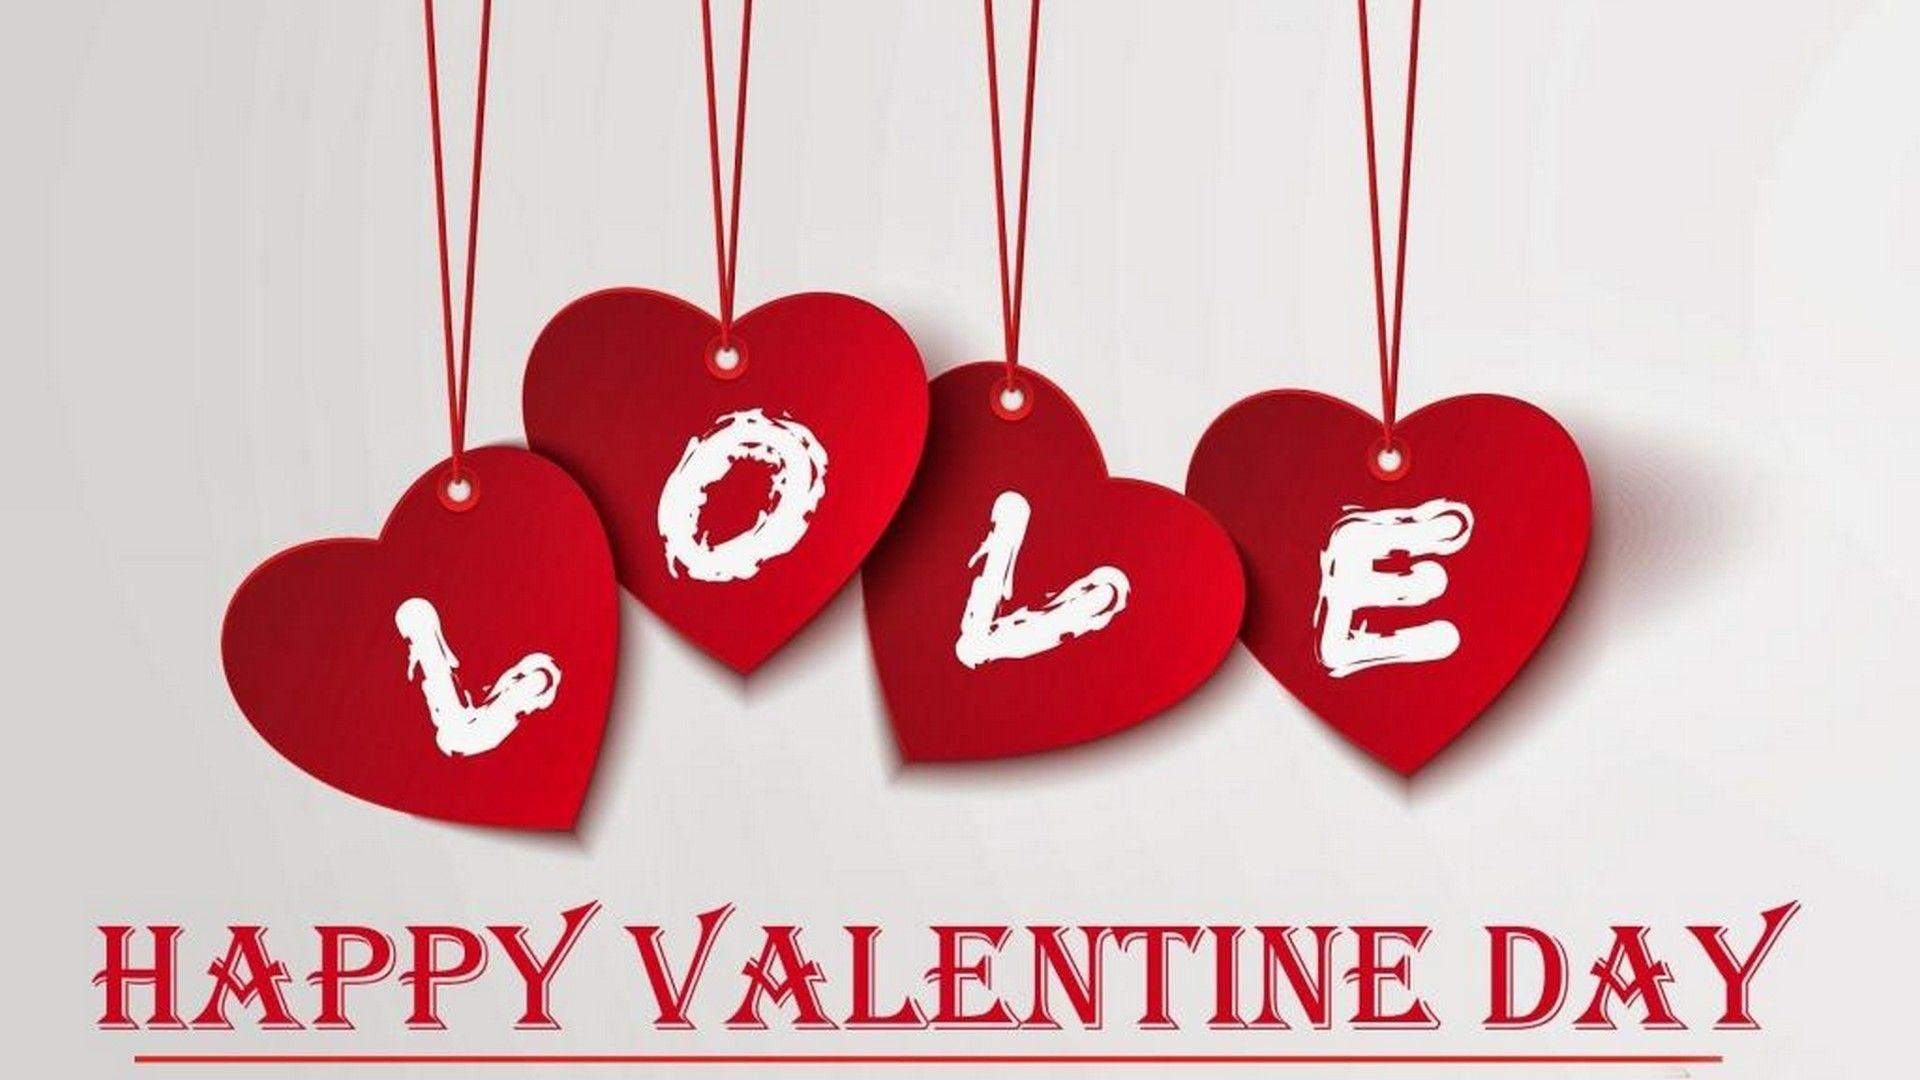 Cute Love Valentines Day Wallpapers